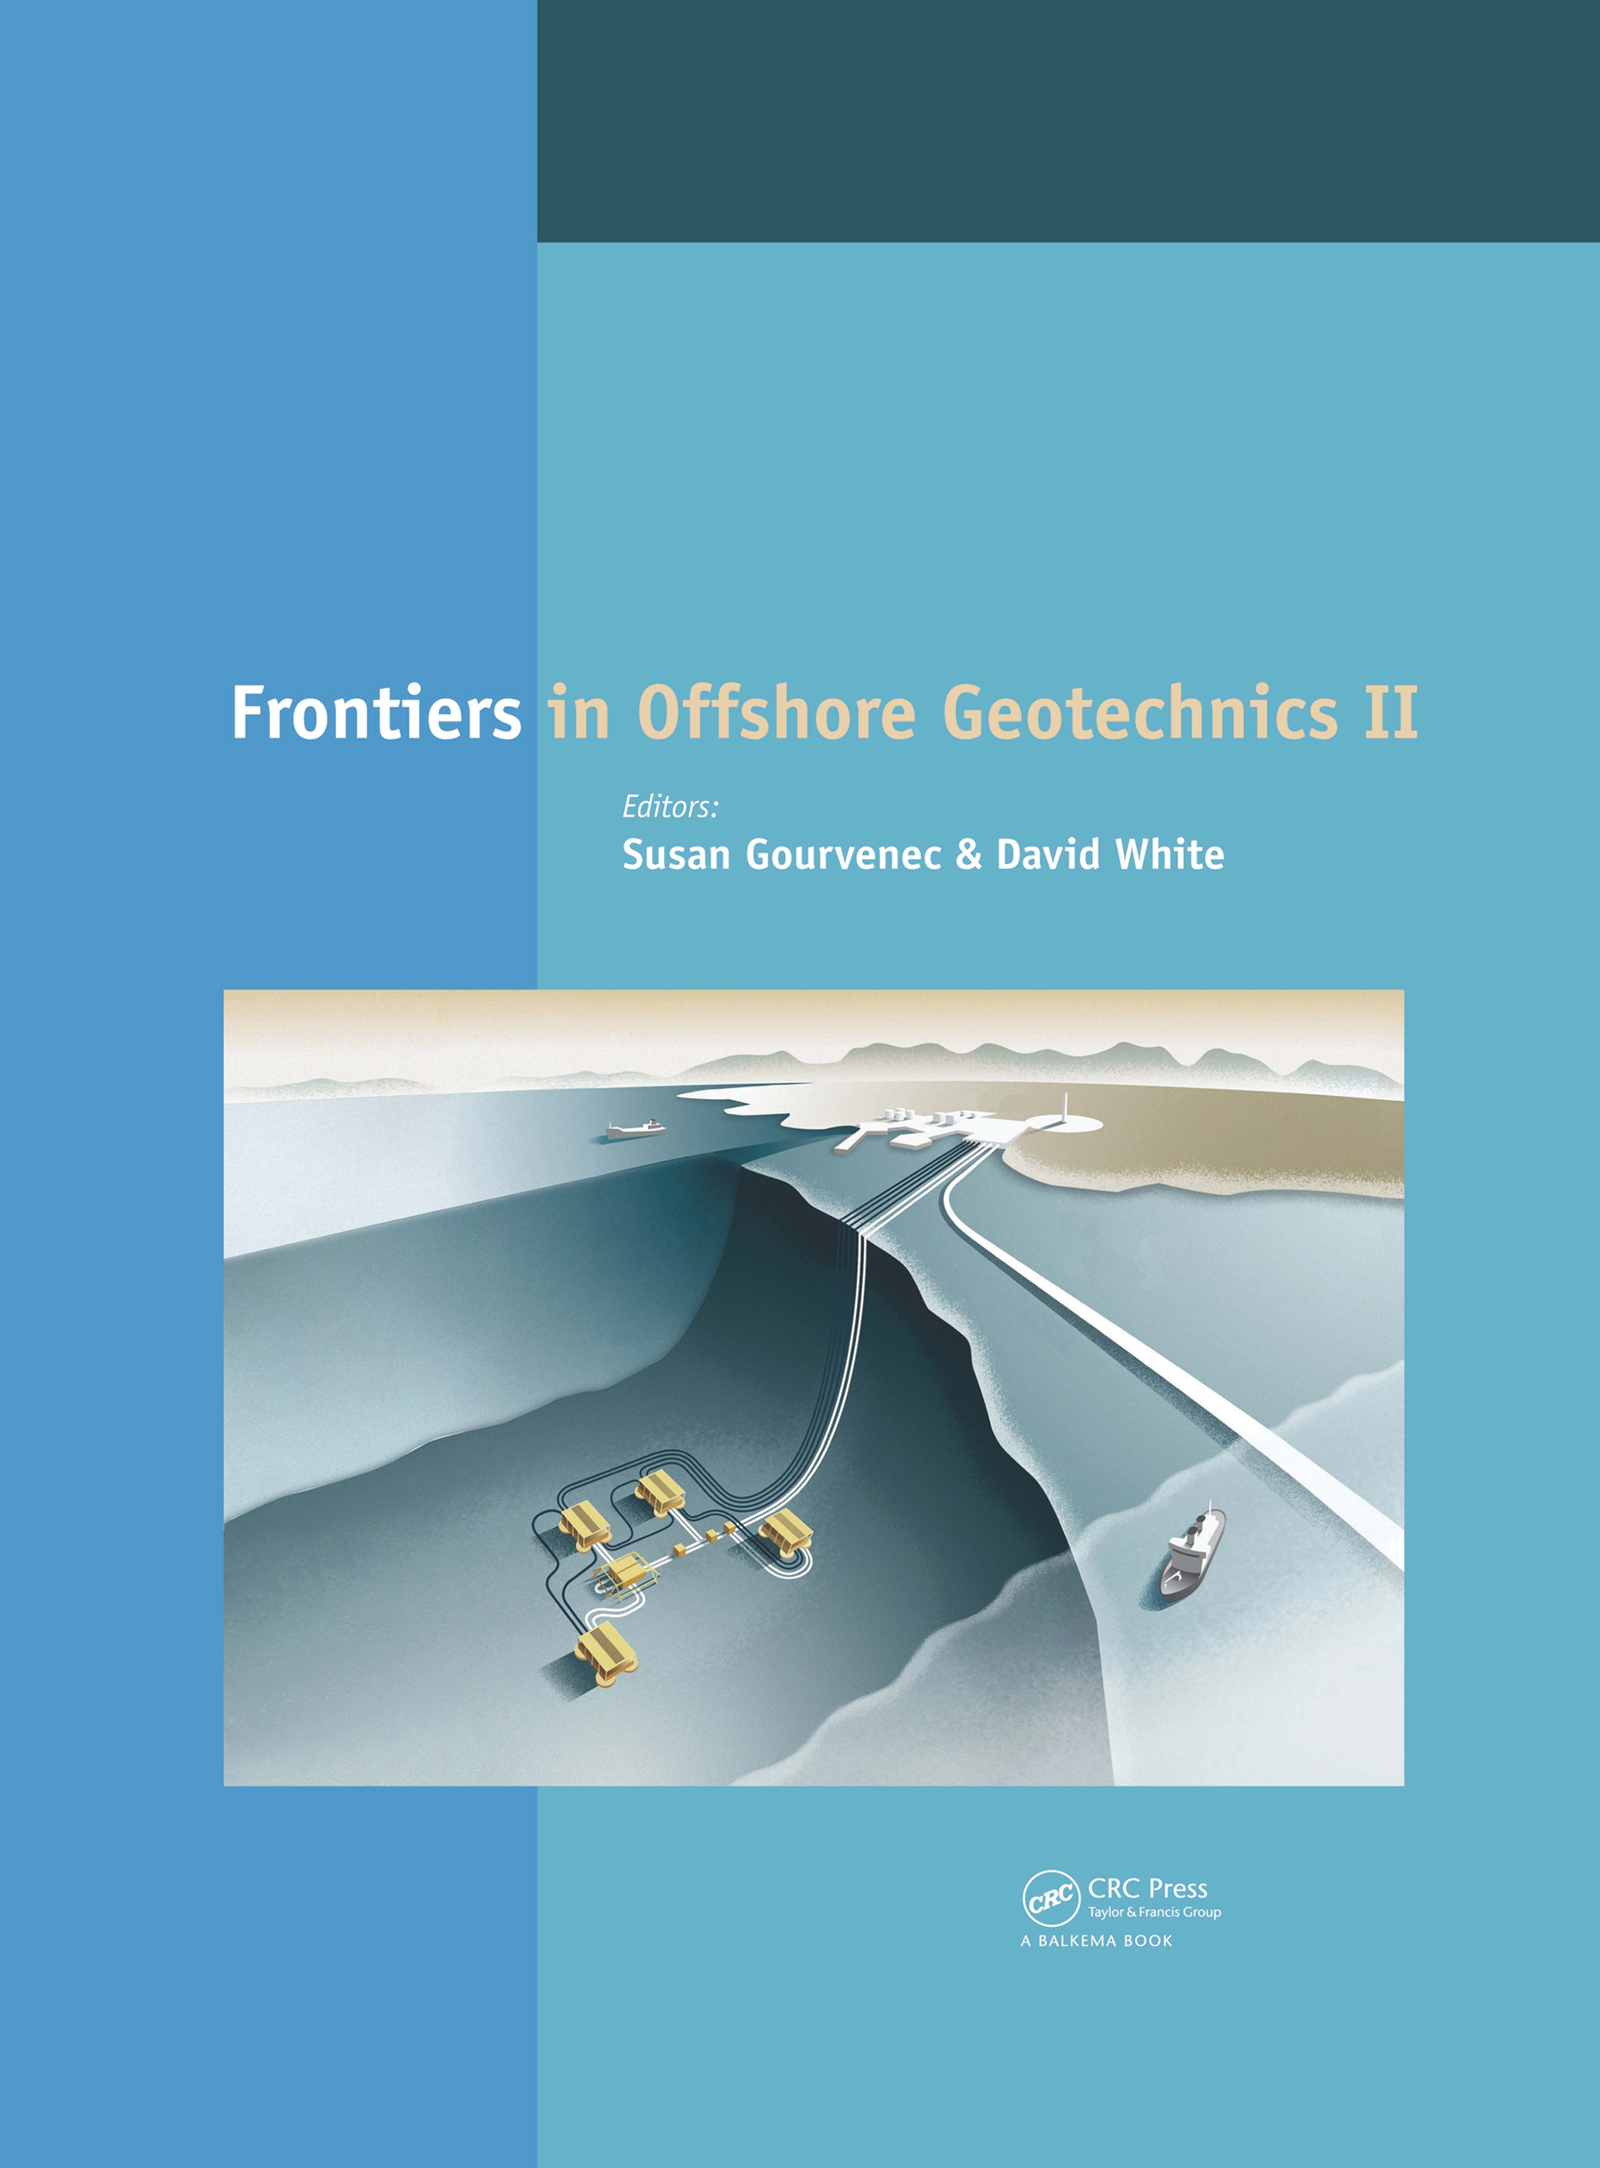 Frontiers in Offshore Geotechnics II: 1st Edition (Pack - Book and CD) book cover